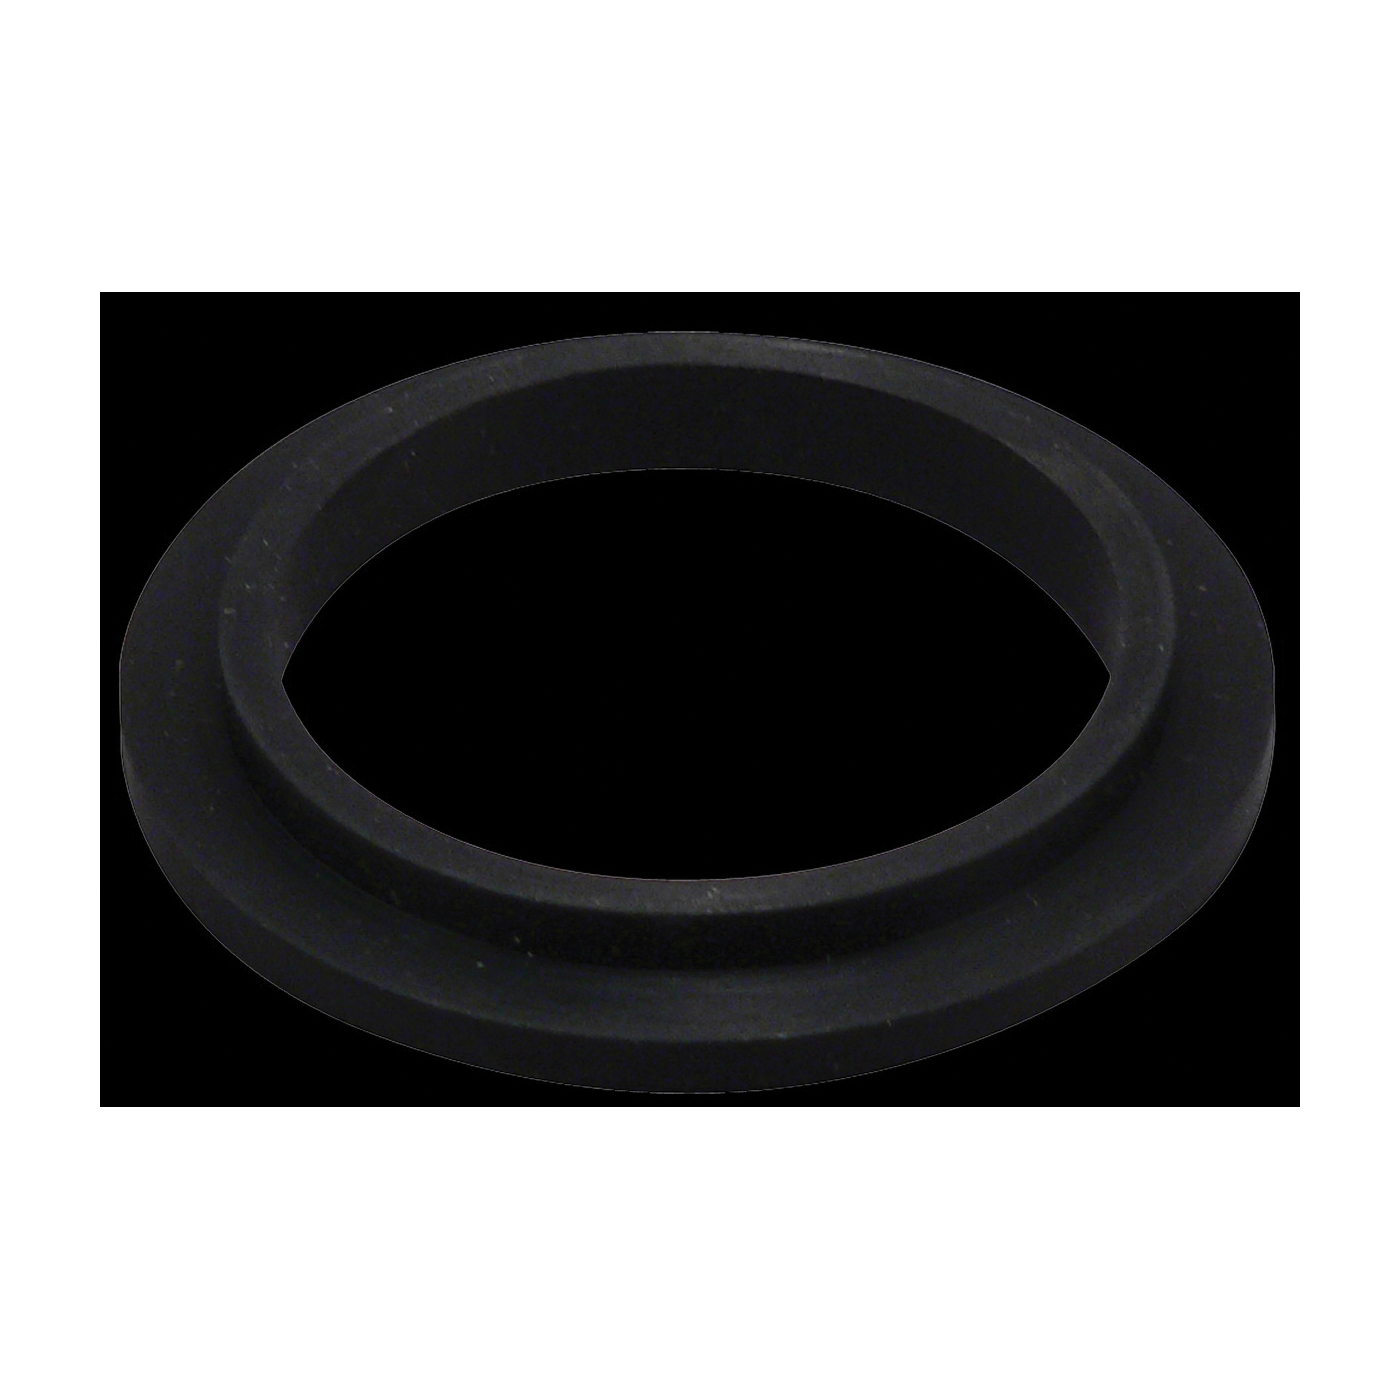 Picture of Keeney PP836-24L Tank to Bowl Gasket, Rubber, Black, For: Eljer Toilets